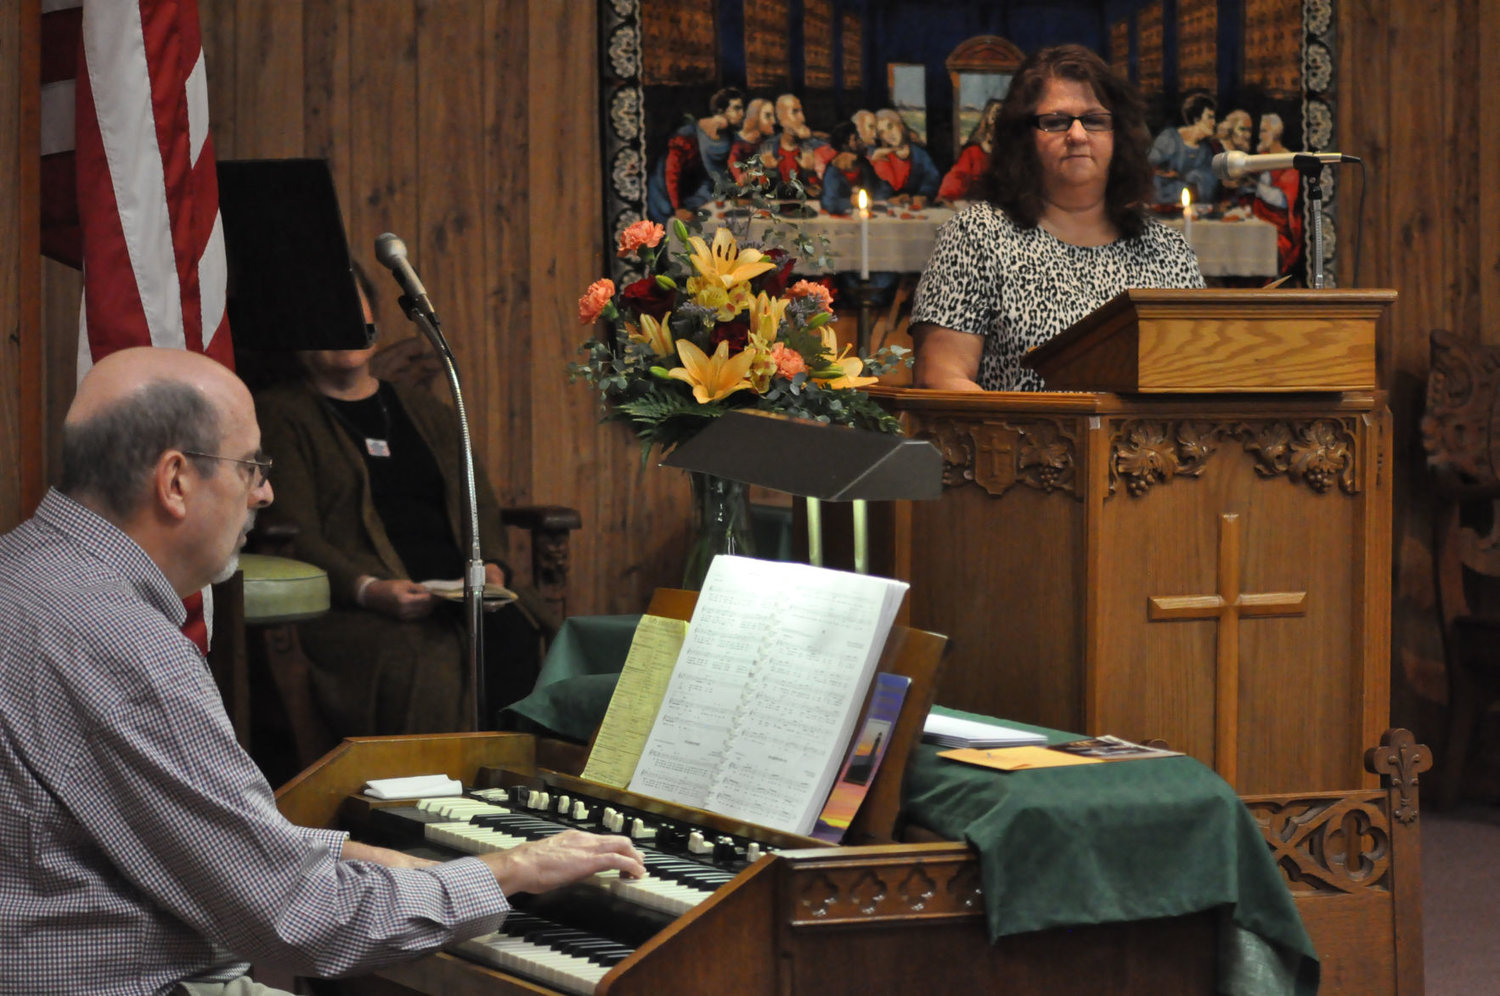 Kathy Addler listens as her husband, Ron, plays the organ Sunday during the final worship service at Milligan Memorial Presbyterian Church. The land for the building was donated in the 1890s by Gen. Lew and Susan Wallace.